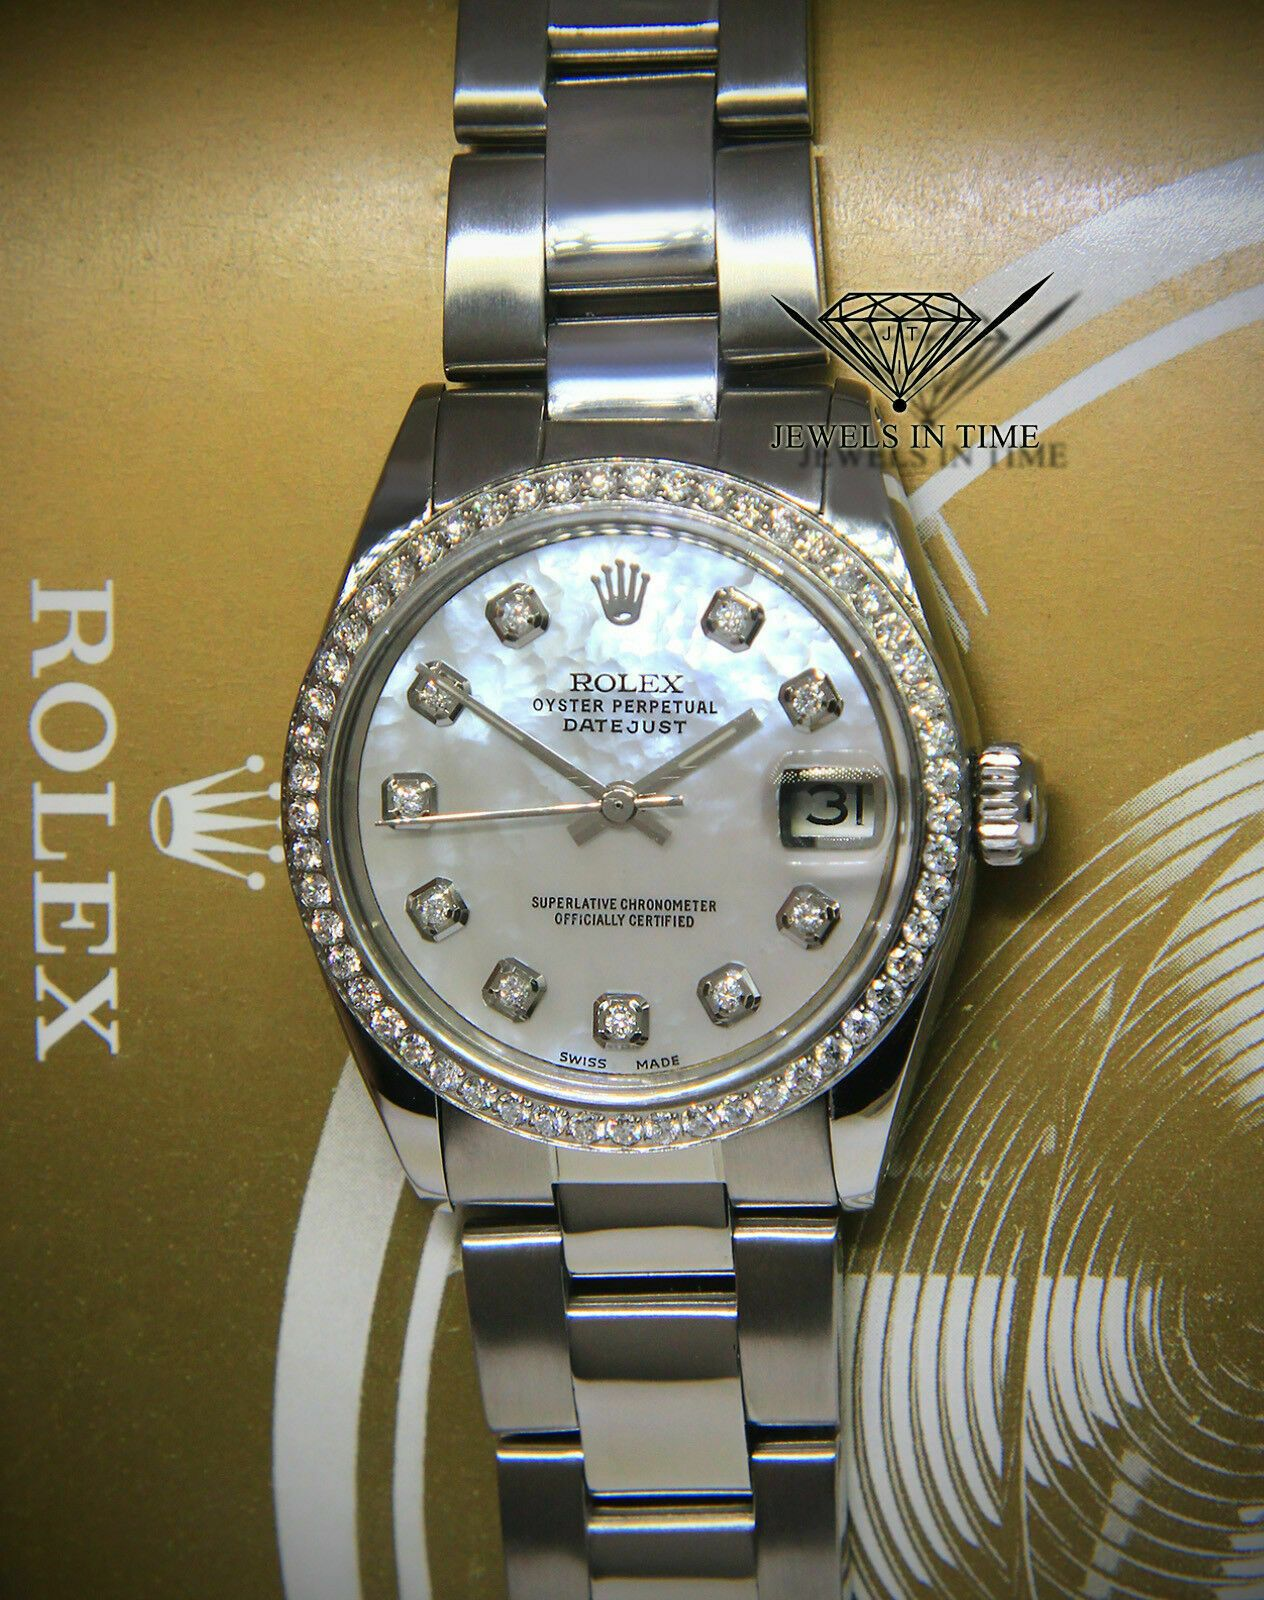 Rolex Datejust Lady 31 in 2020 Rolex, Rolex watches for